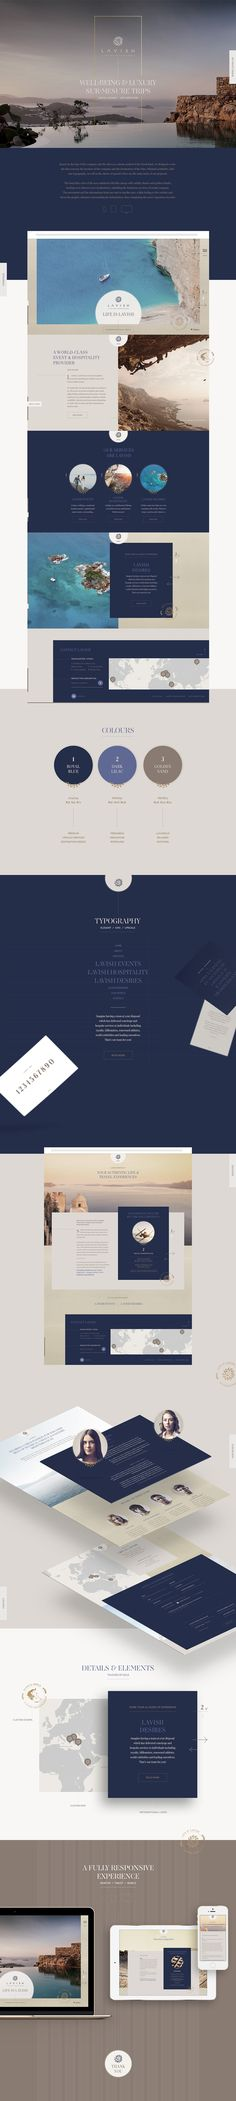 Lavish Website on Behance Luxury Beauty - http://amzn.to/2jx73RT